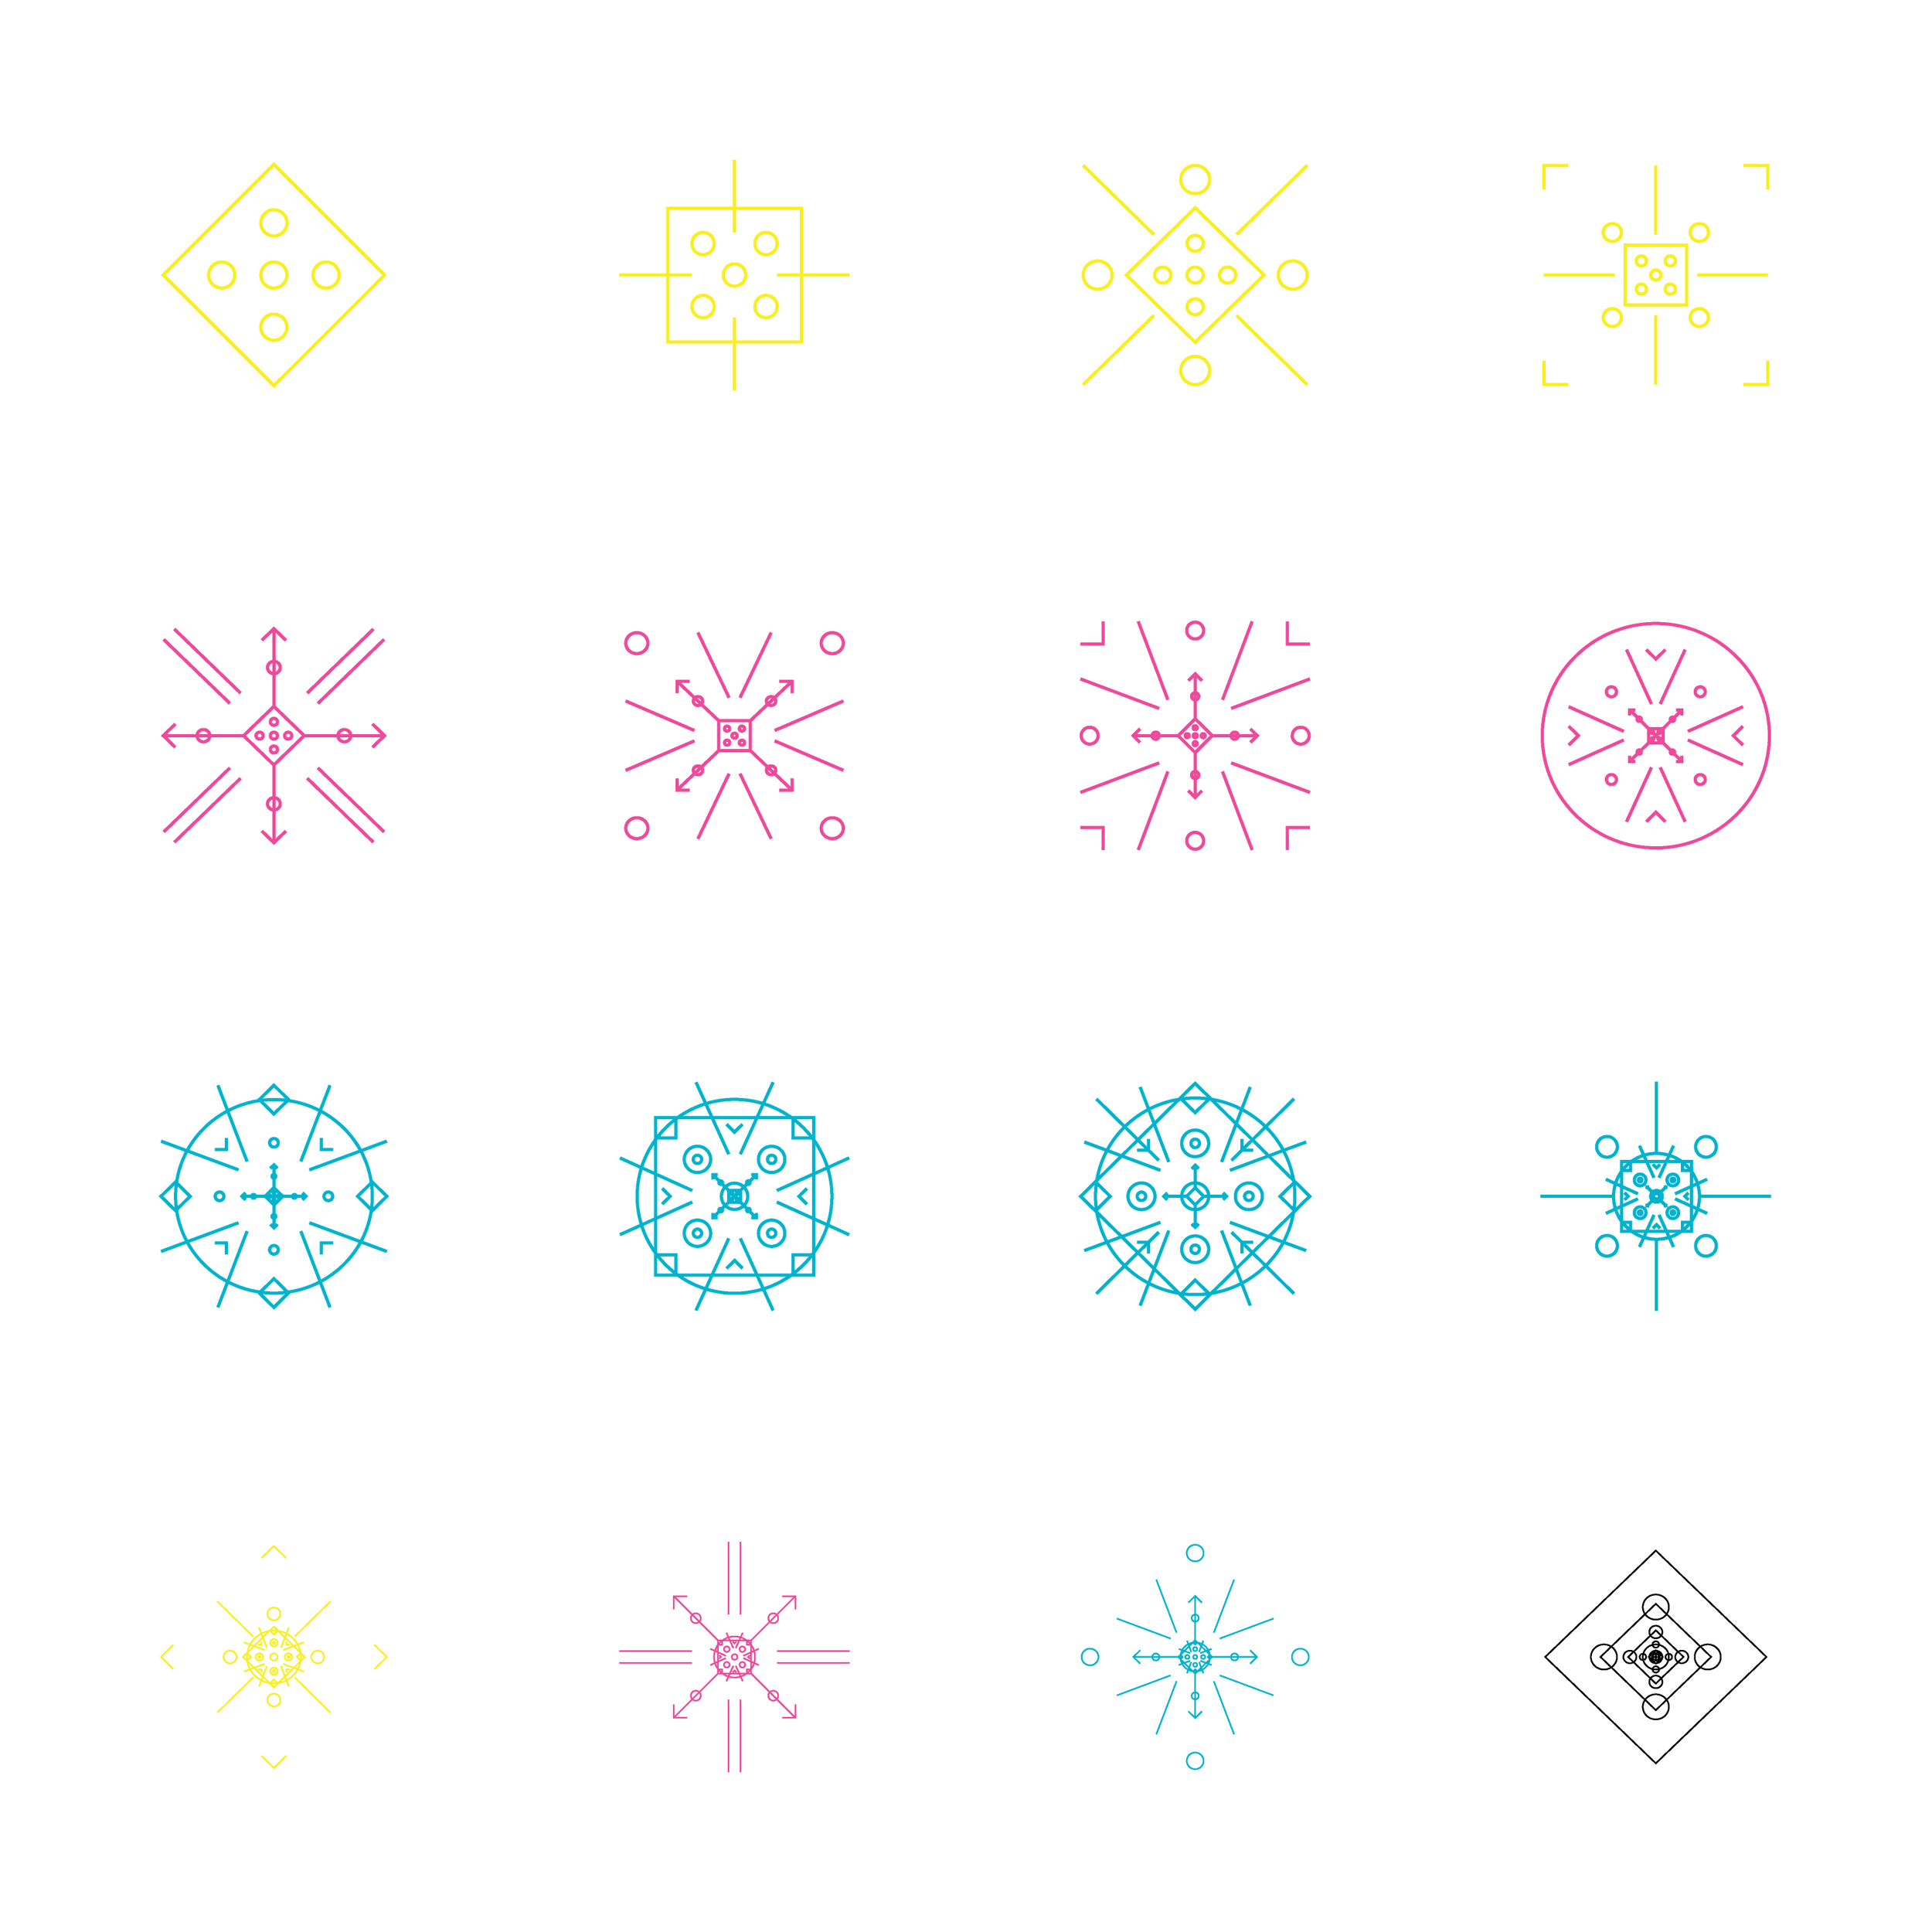 evolving pattern of geometric shapes mimicking the repetition and consistency in the song's beats